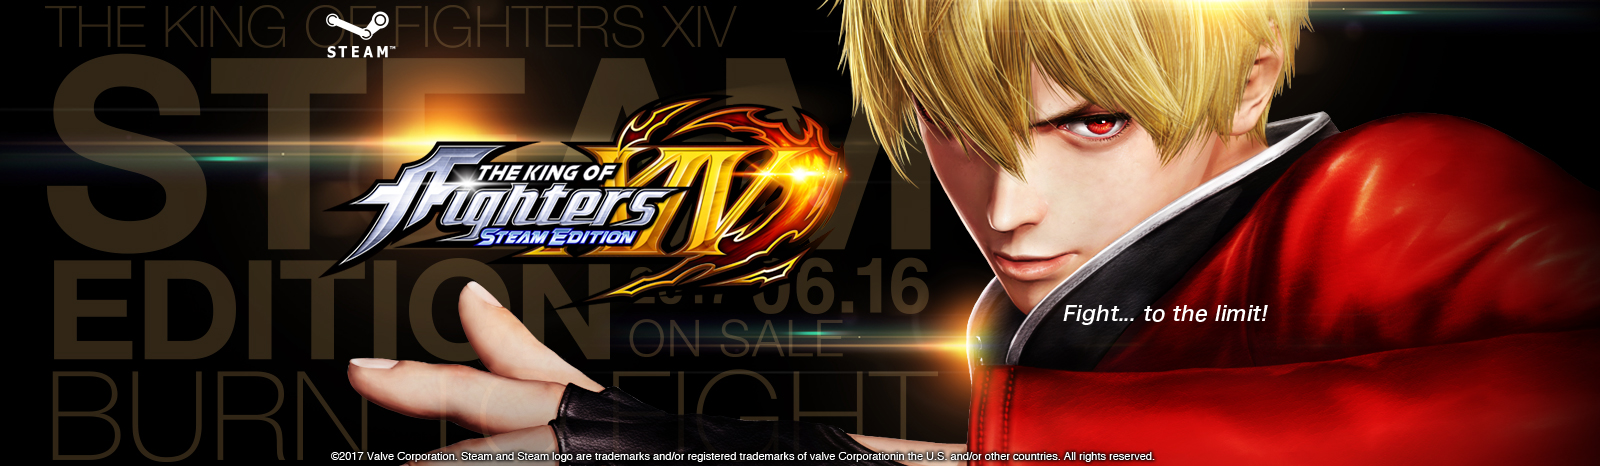 THE KING OF FIGHTERS XIV STEAM EDETION